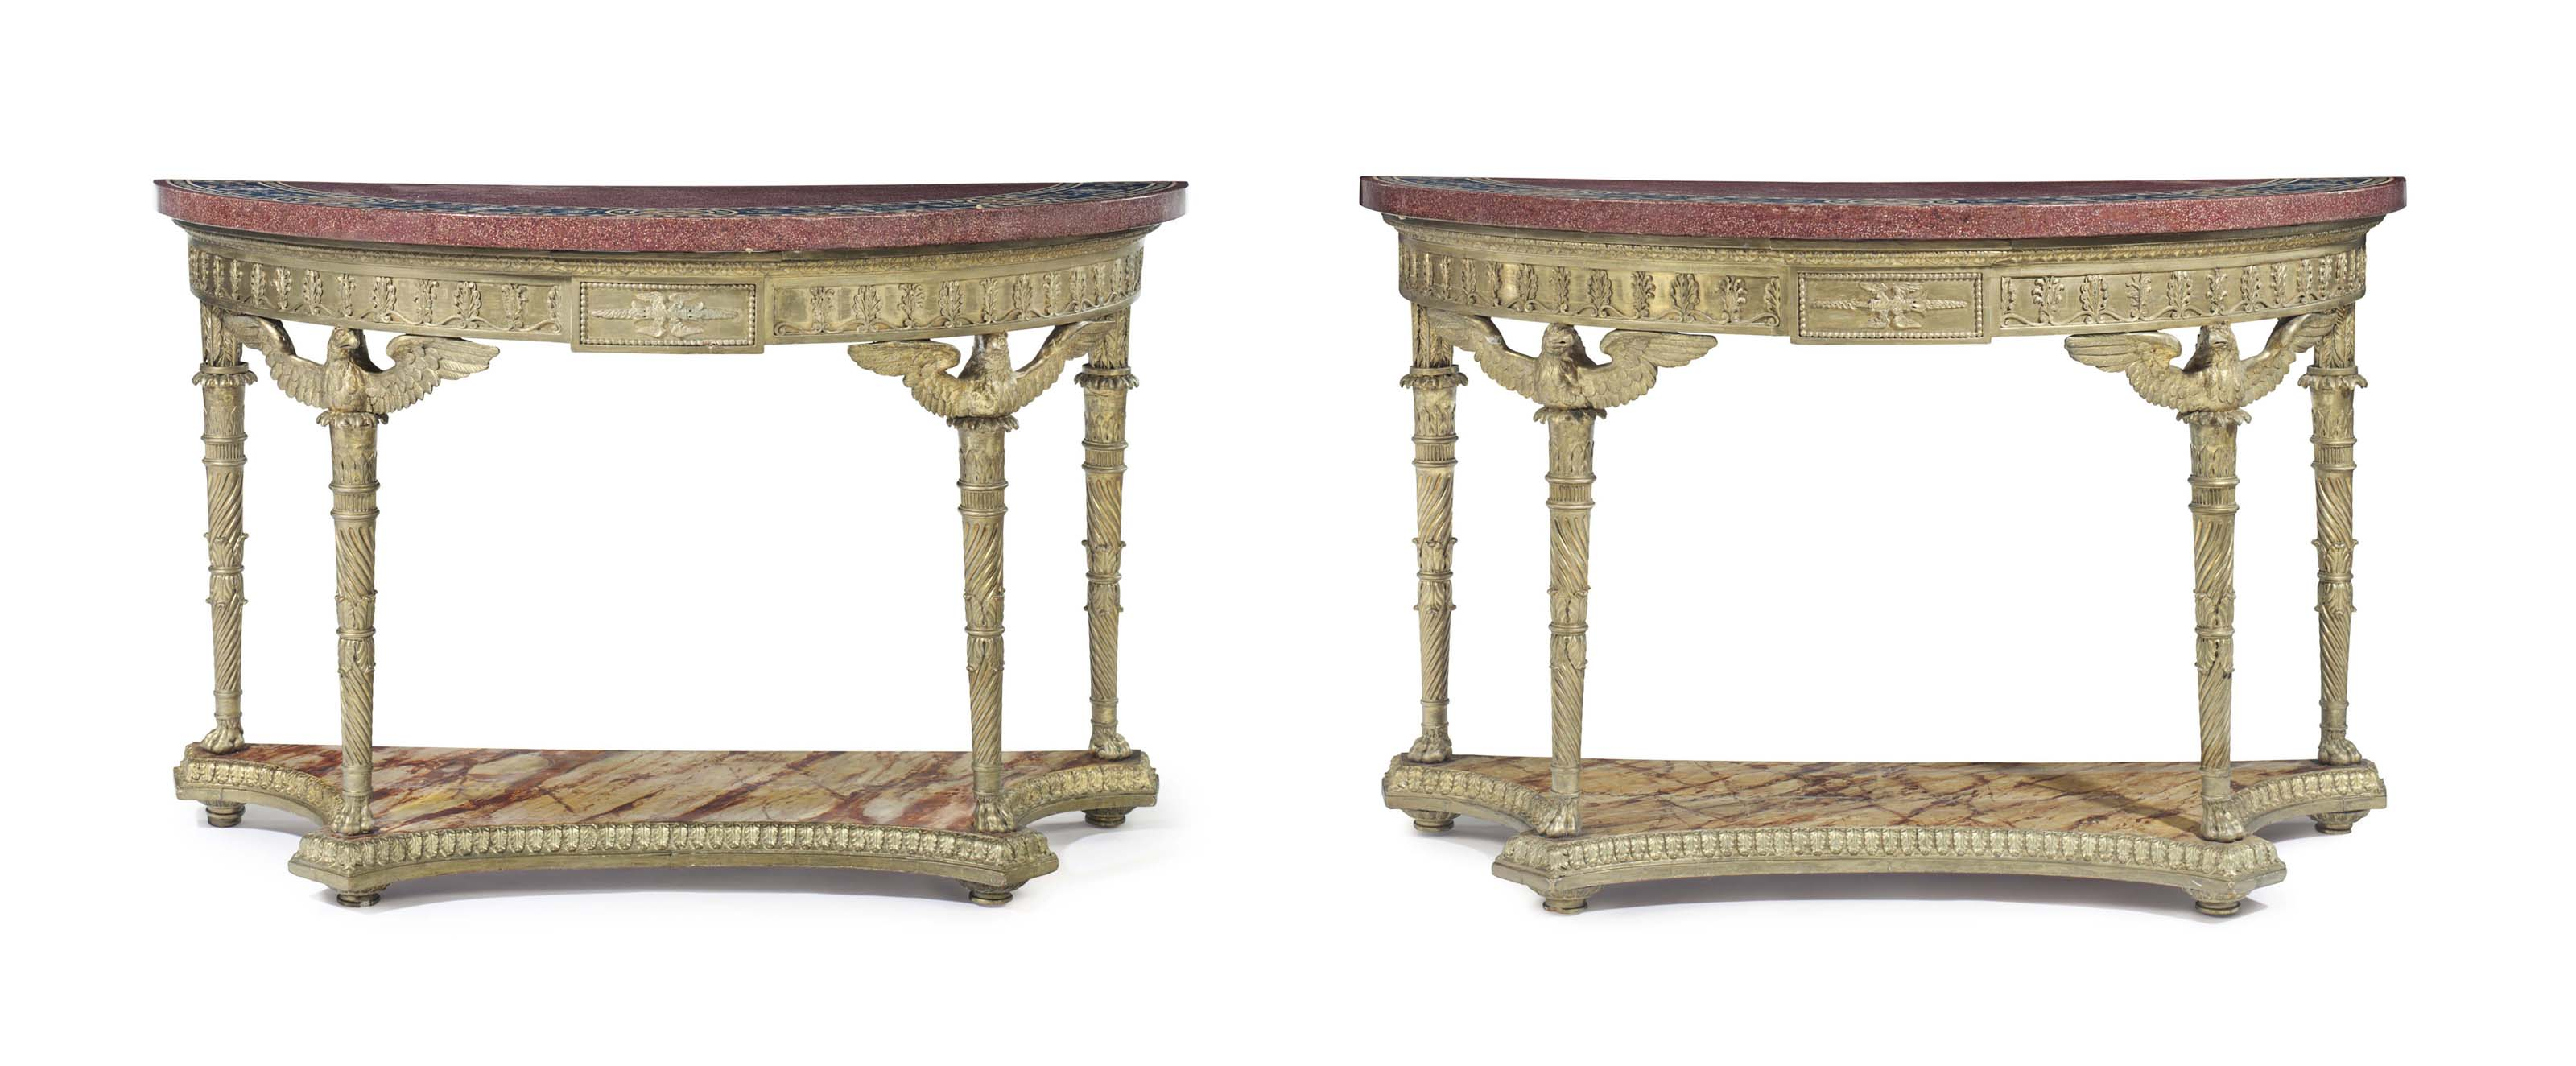 A PAIR OF GEORGE III GILTWOOD DEMI-LUNE CONSOLES AND SCAGLIOLA TOPS